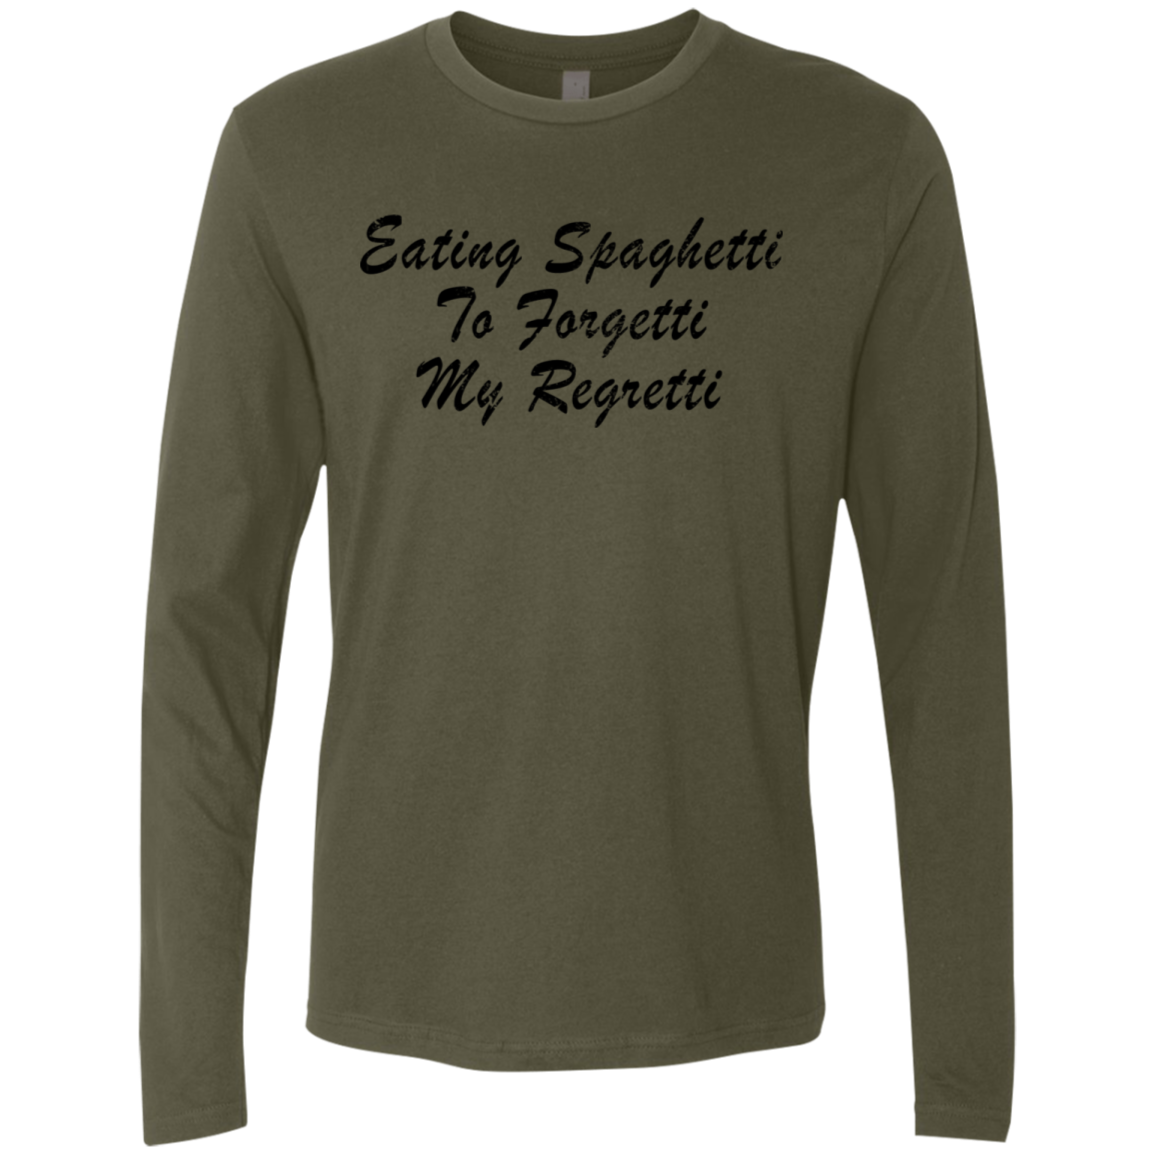 Eat Spaghetti To Forgetti Your Regretti Men's Long Sleeve Tee